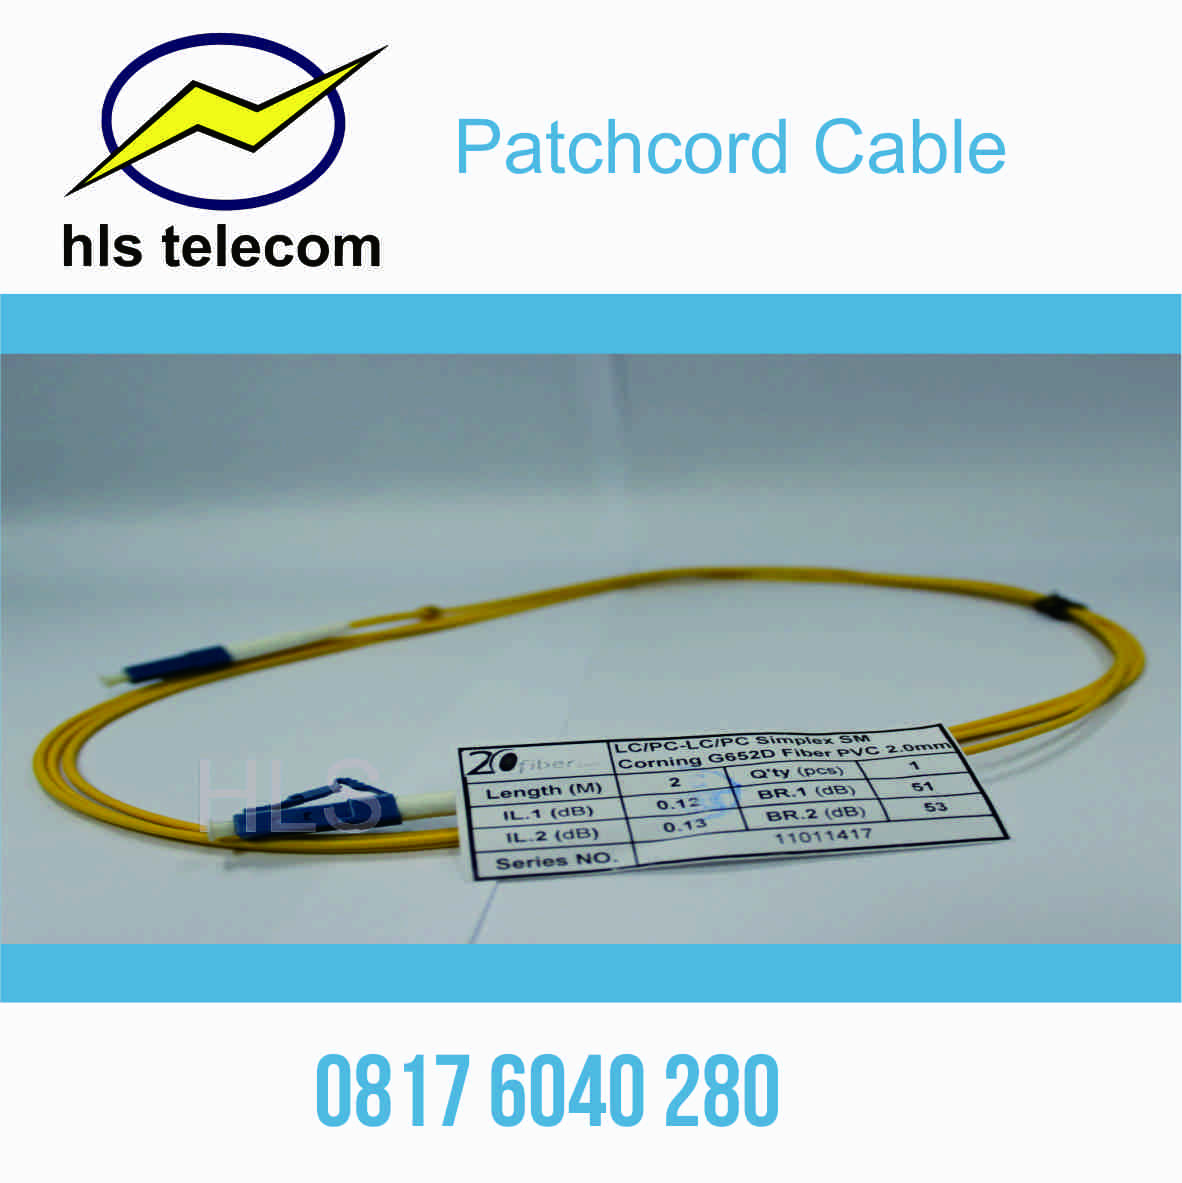 Kabel Patchcord Fiber Optic